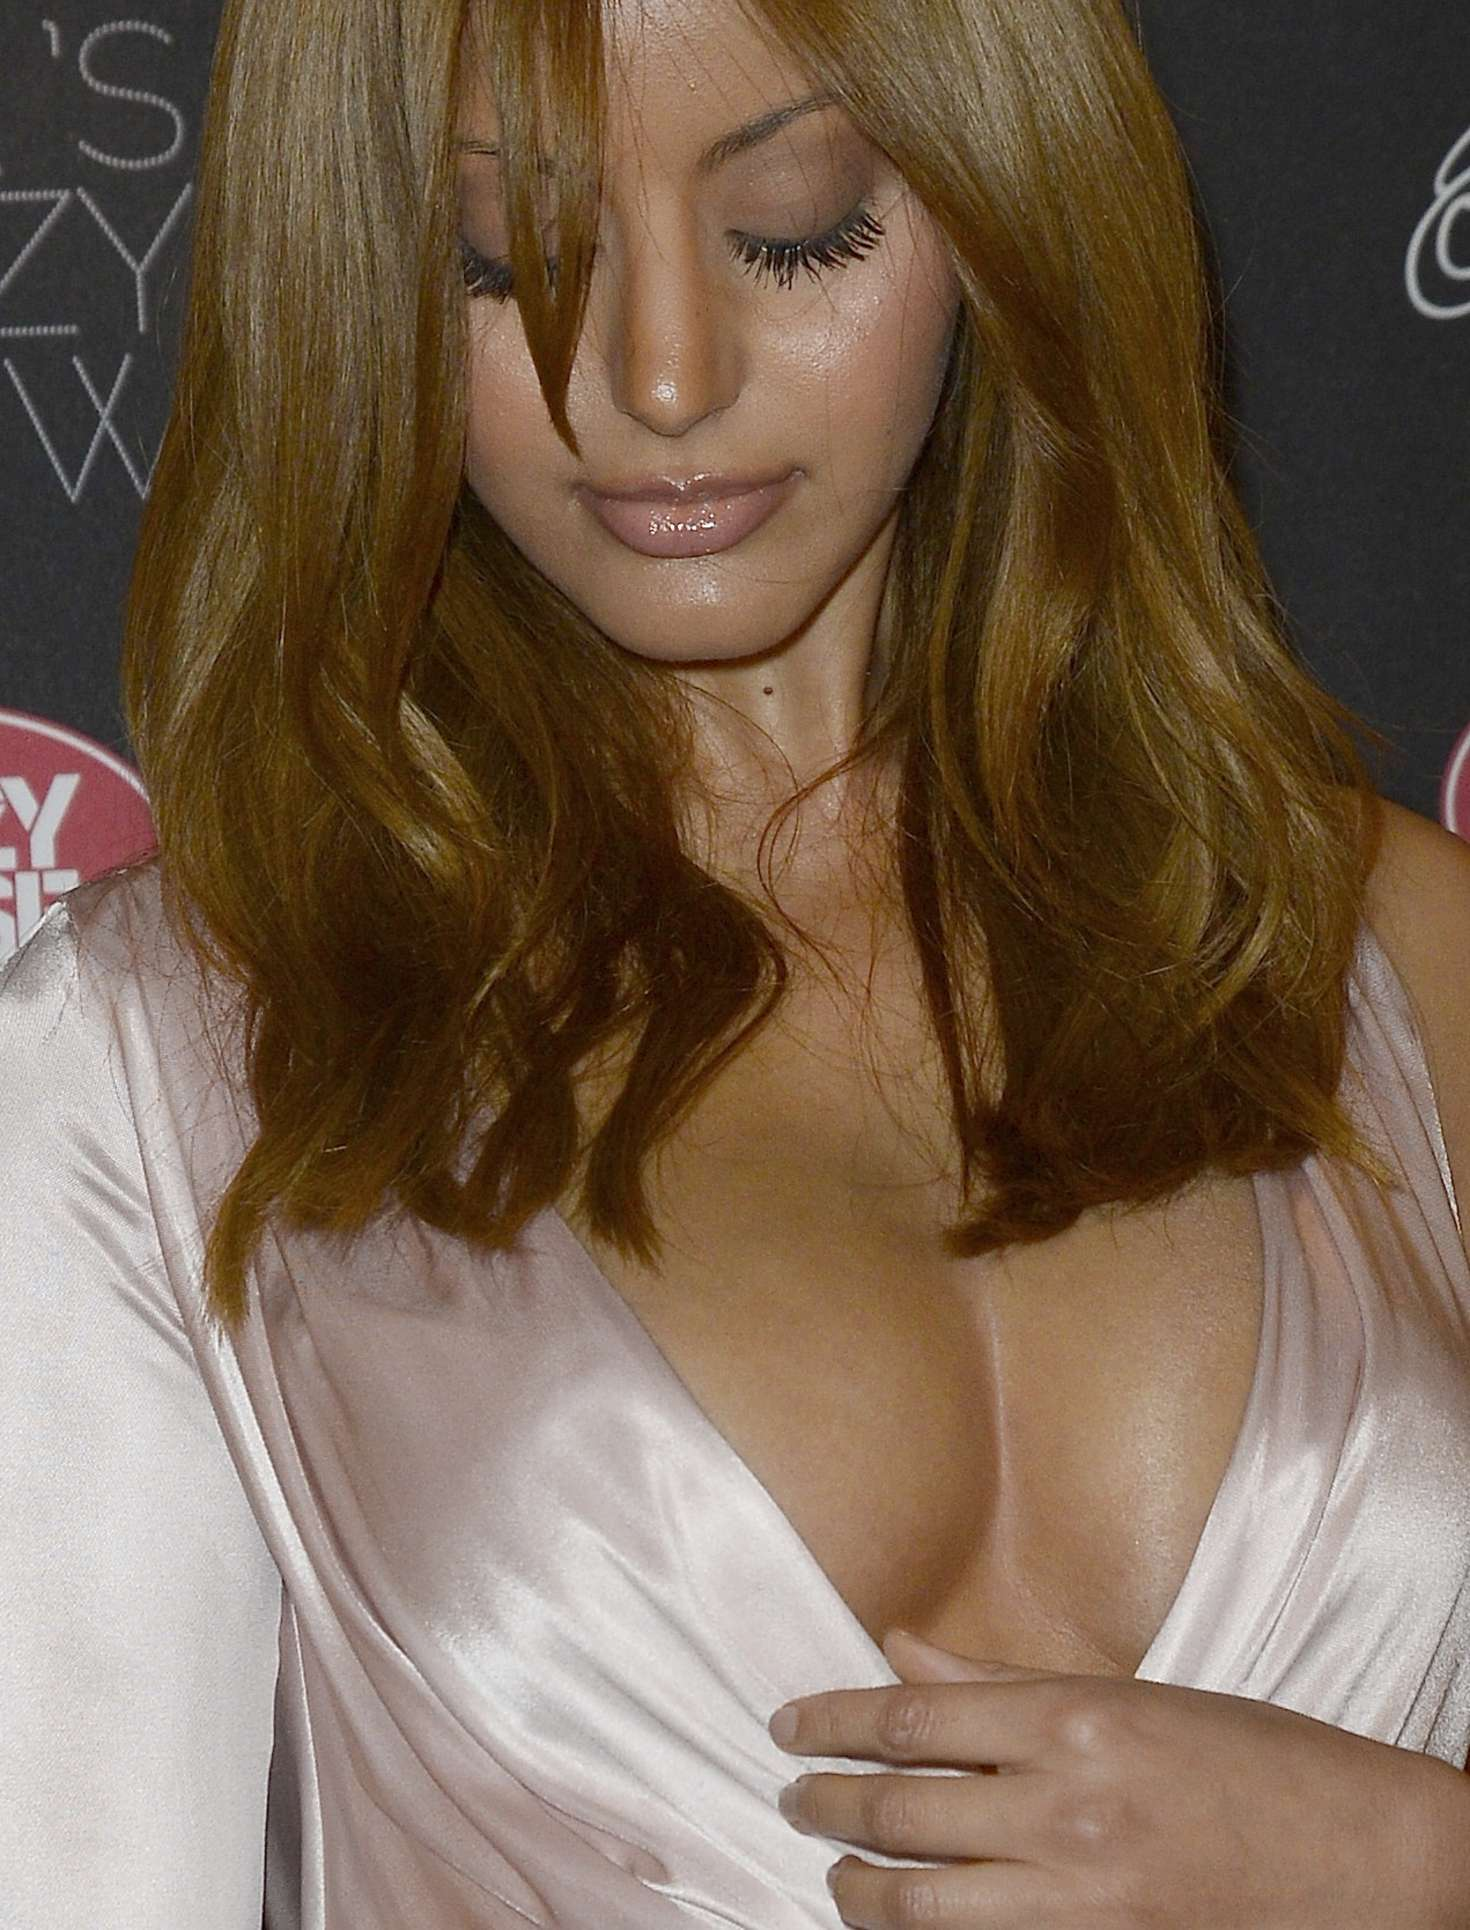 zahia-dehar-areola-slip-pussy-slip-at-crazy-horse-in-paris-24